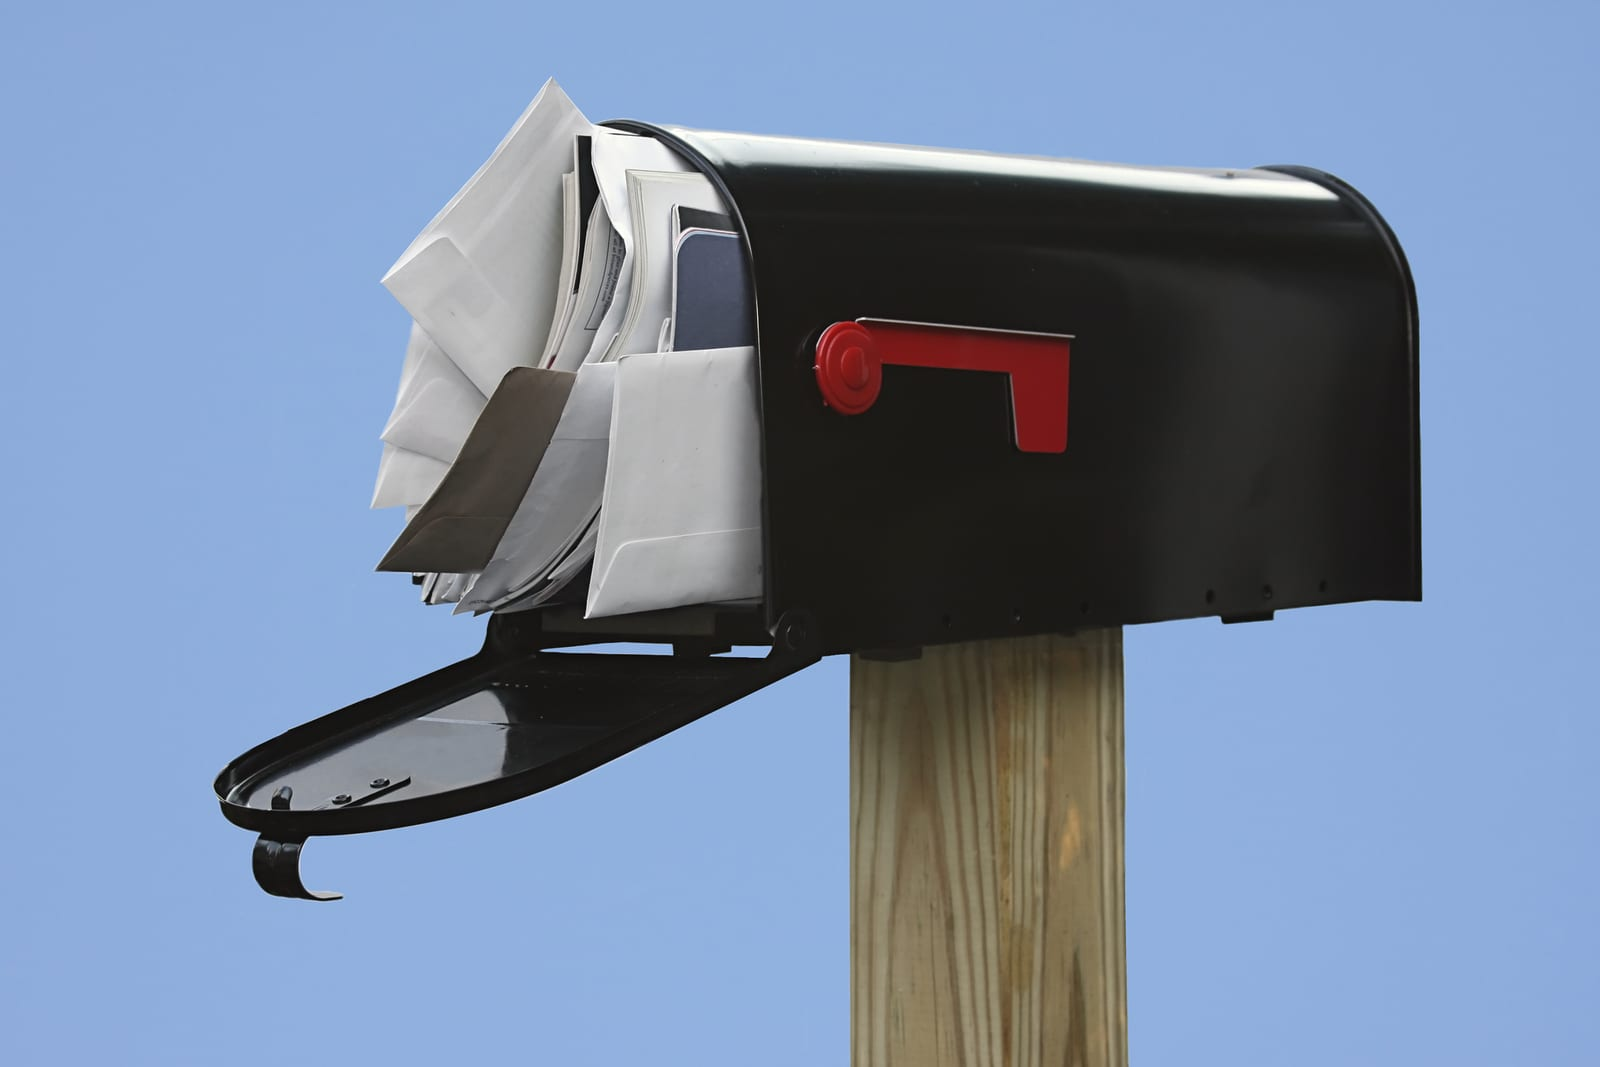 Black Mailbox stuffed with junk mail on a blue background